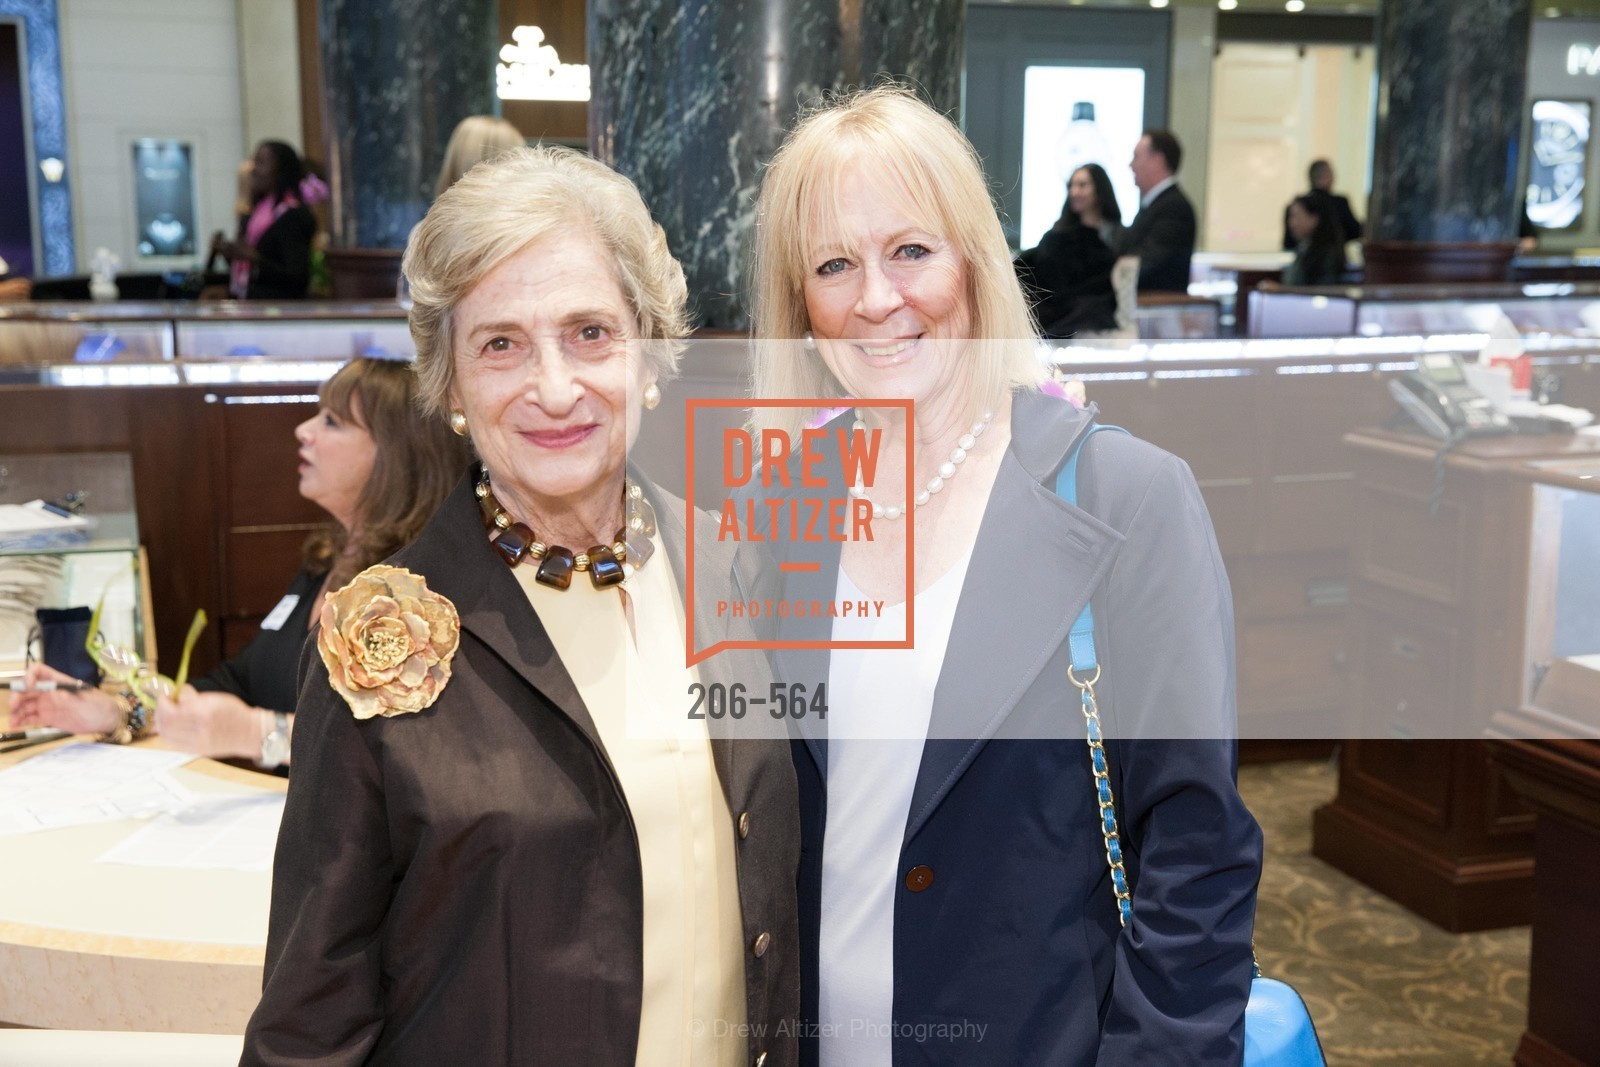 Joyce Frankenburg, Dianne Schaffer, SHREVE & CO. Hosts AMERICAN CANCER SOCIETY BENEFIT, US, September 10th, 2014,Drew Altizer, Drew Altizer Photography, full-service agency, private events, San Francisco photographer, photographer california